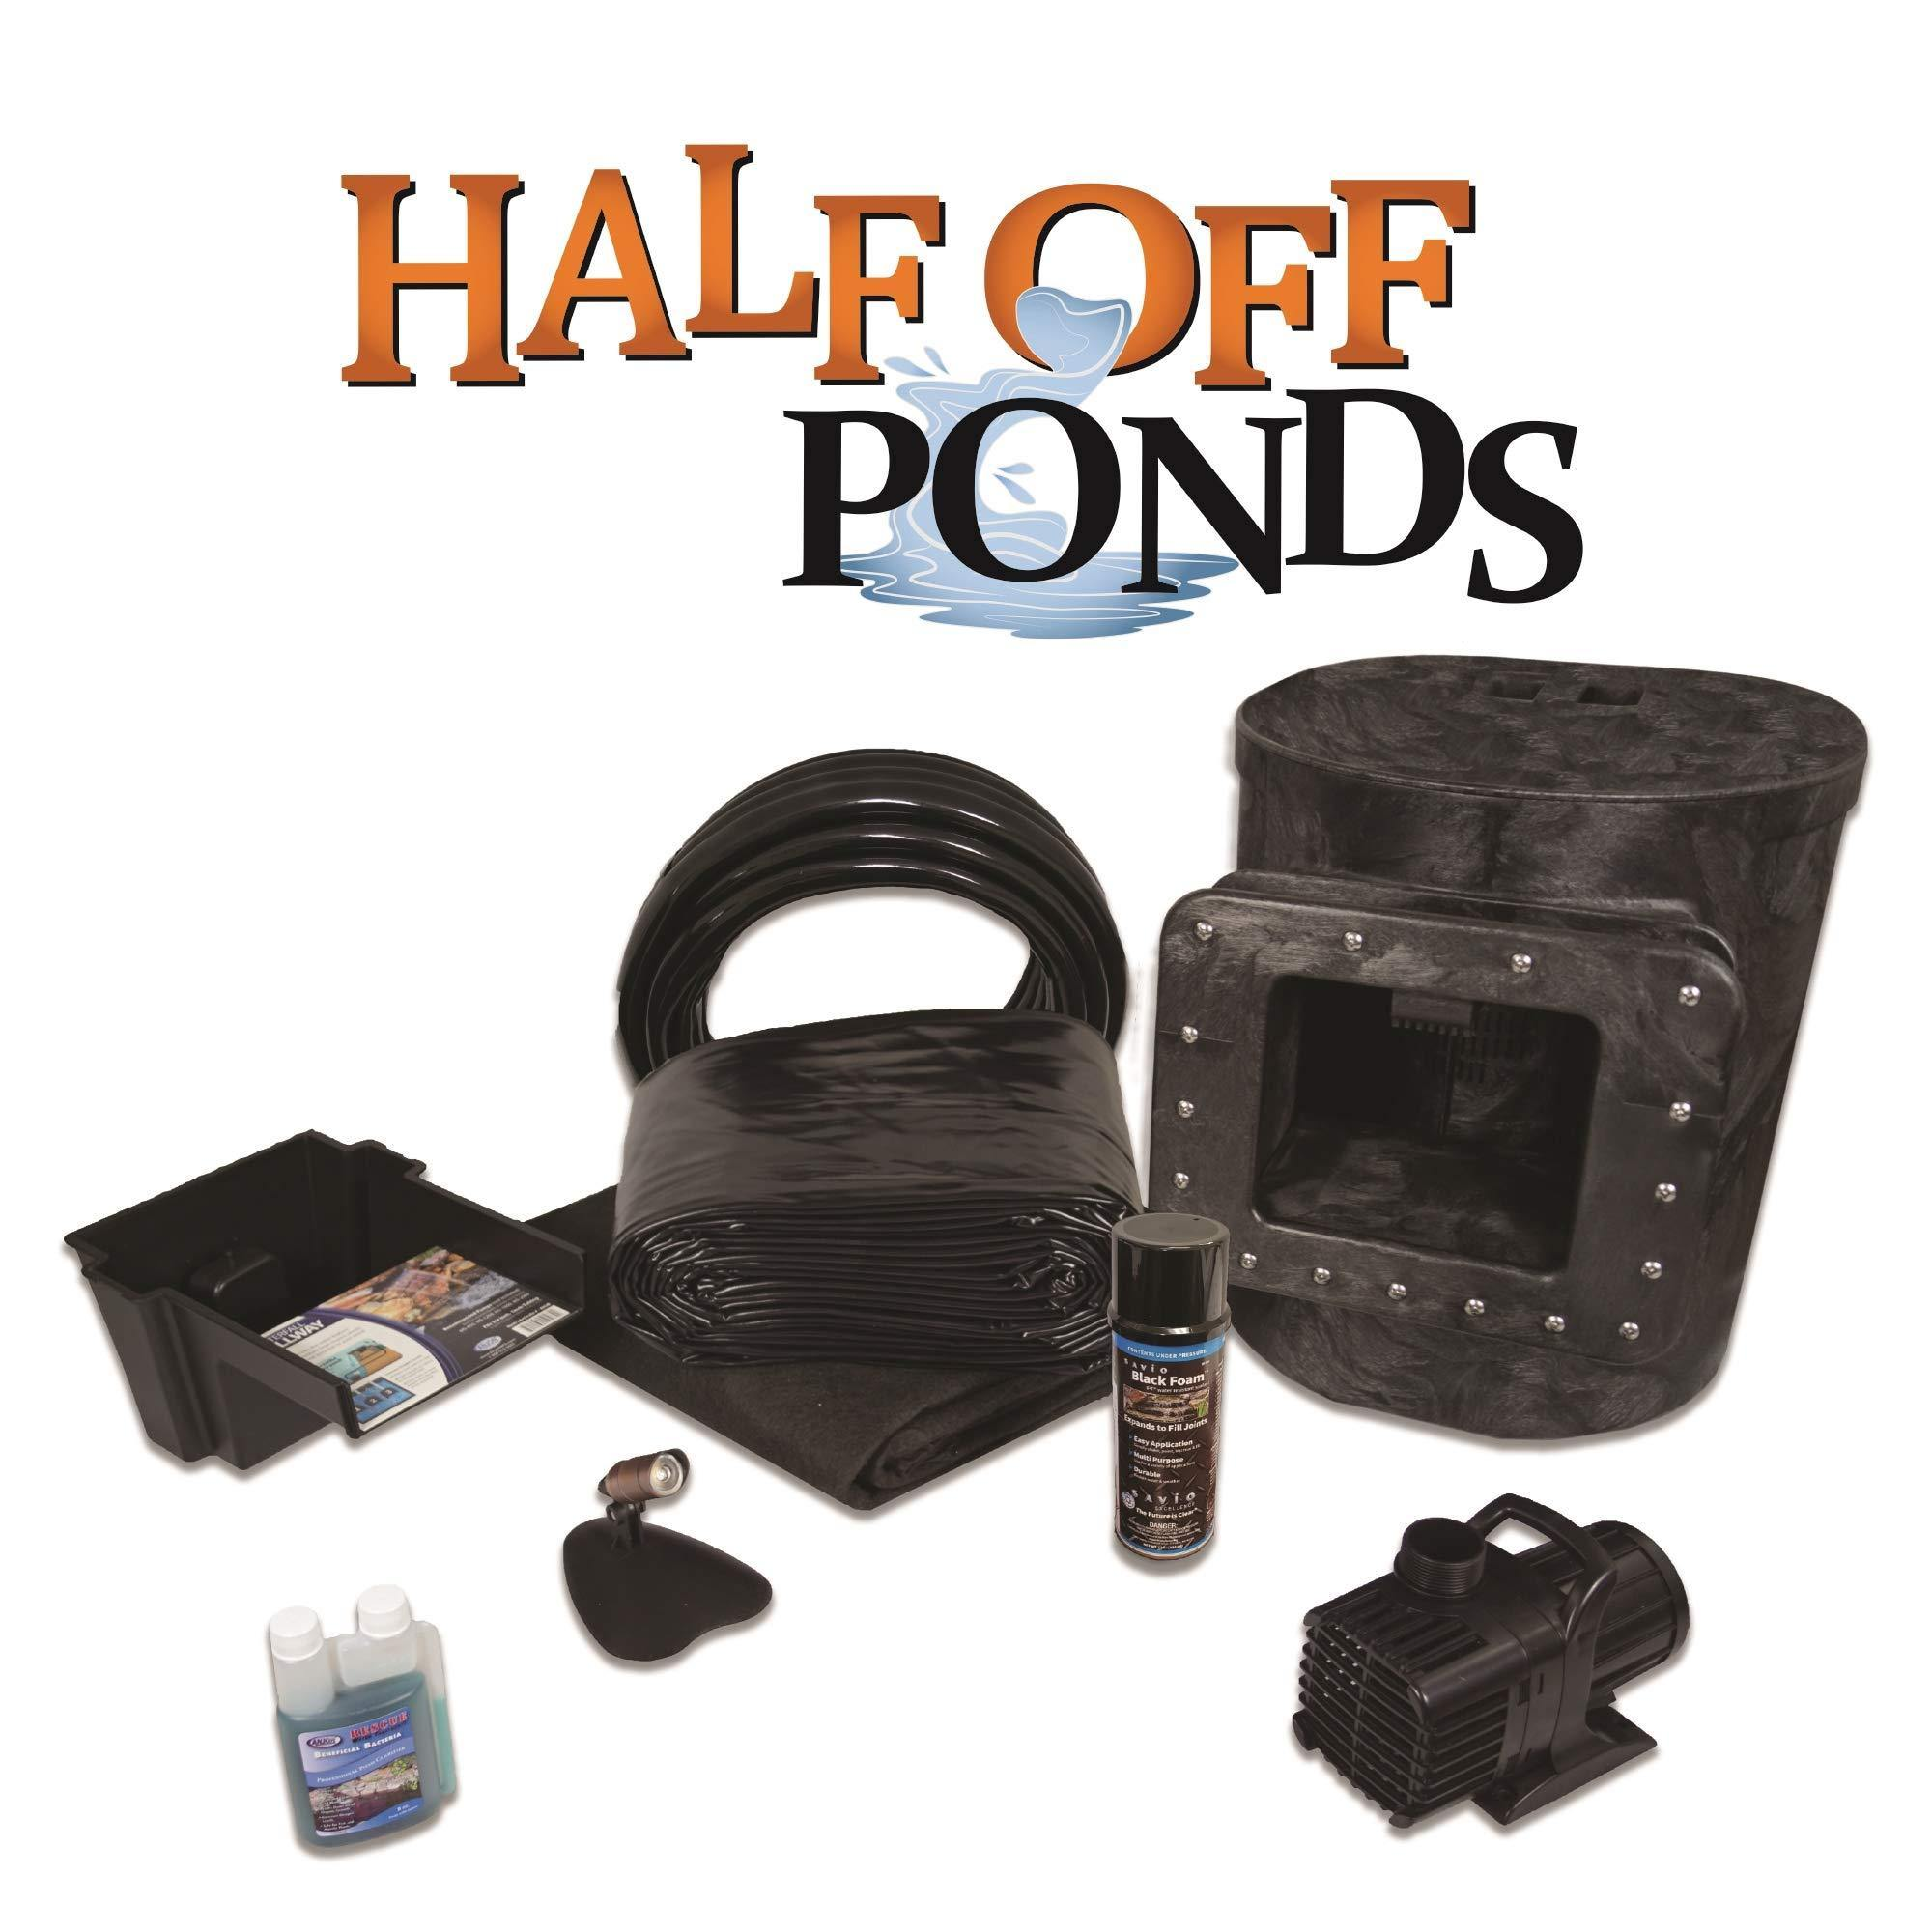 HALF OFF PONDS Simply Ponds 1200 Water Garden and Pond Kit